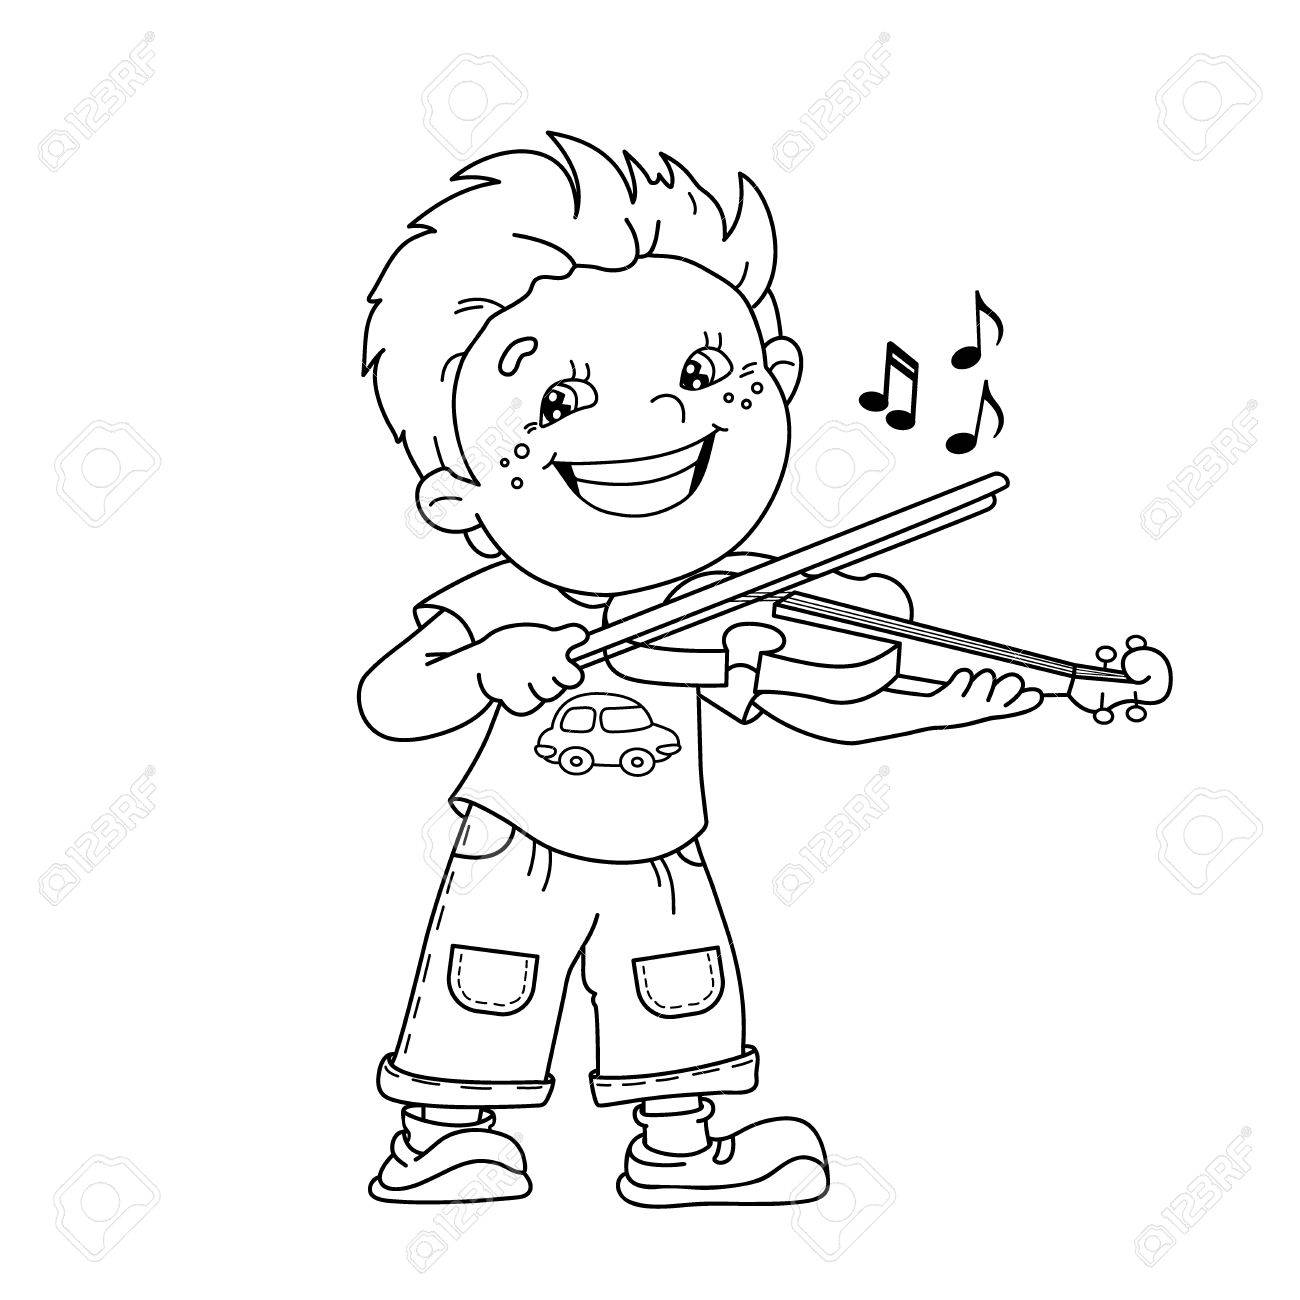 Coloring Page Outline Of Cartoon Boy Playing The Violin. Musical ...